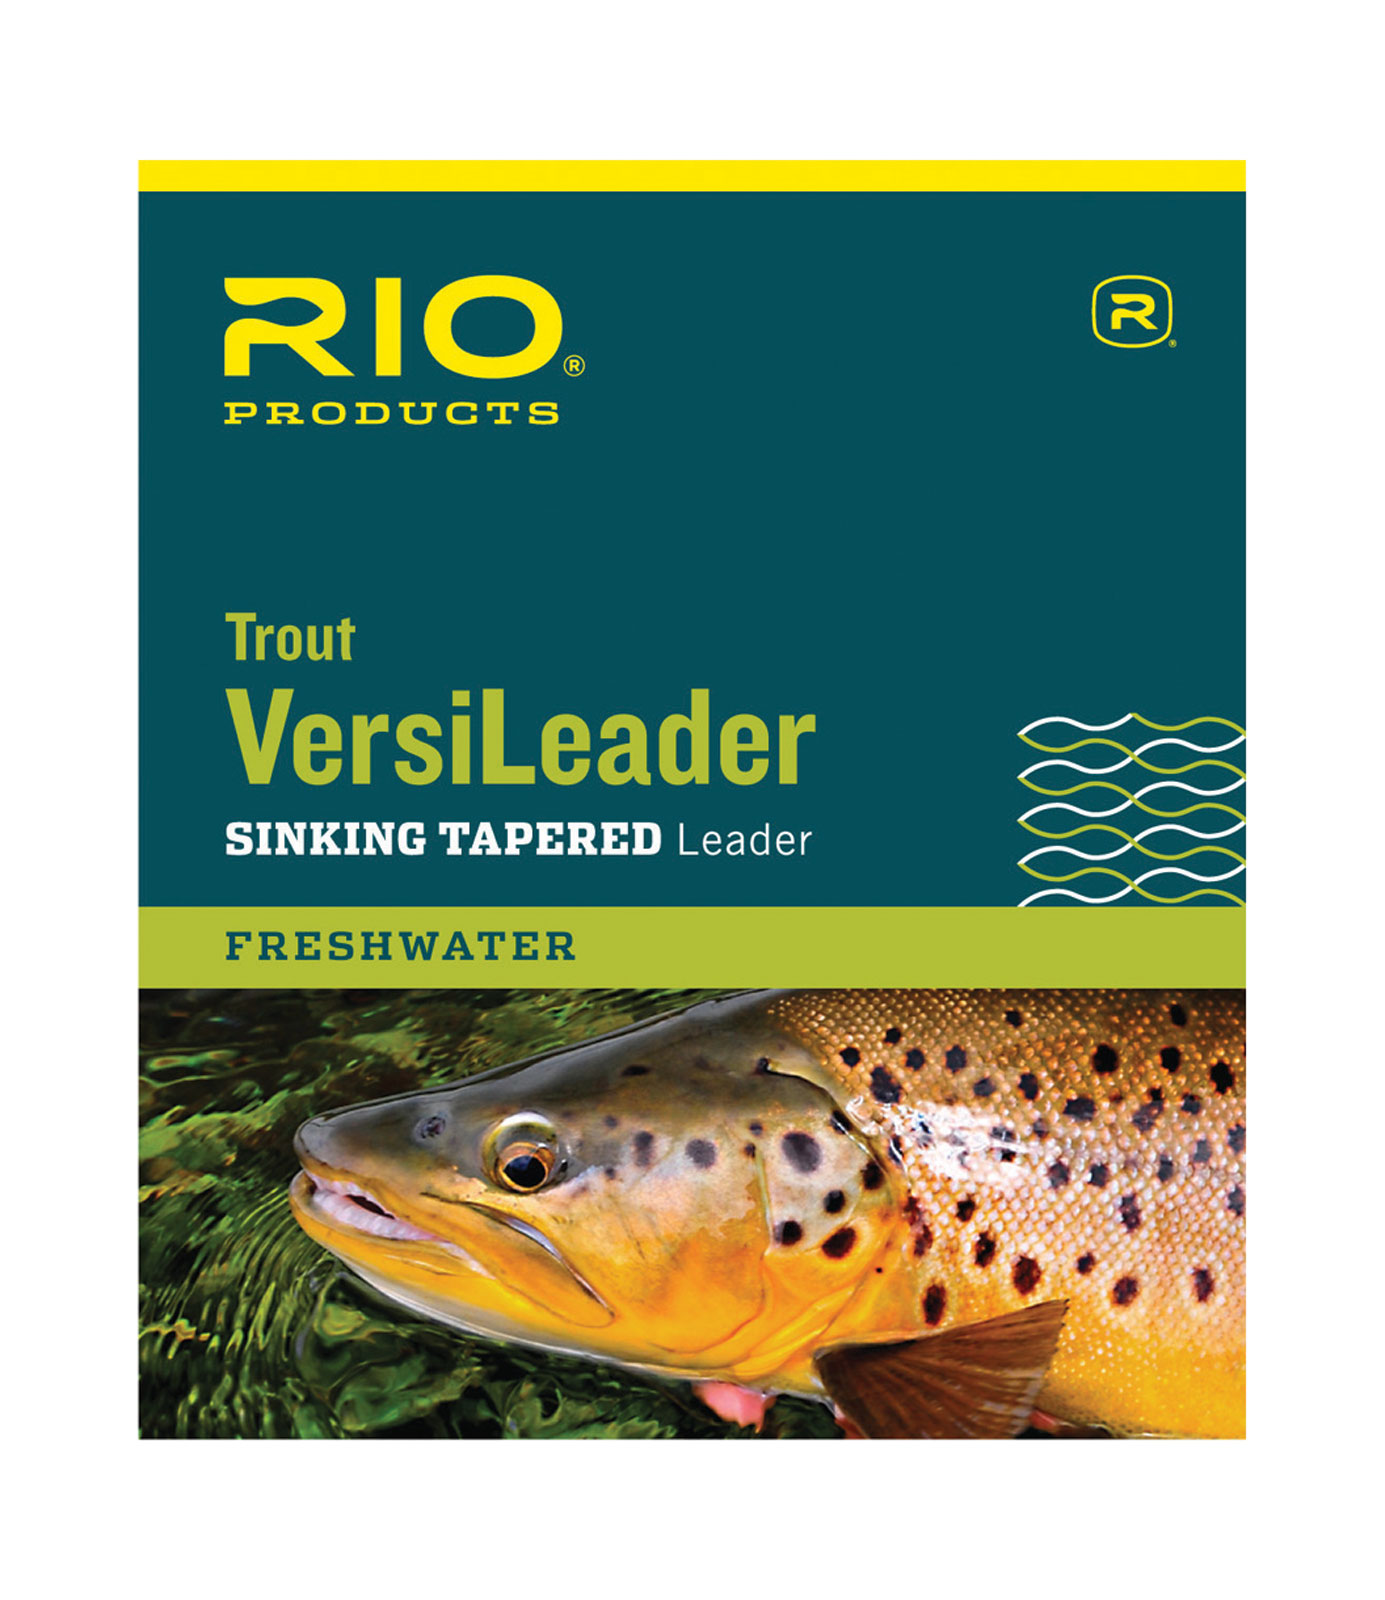 Rio trout fly fishing versileader 7ft 12ft sinking for Rio fly fishing